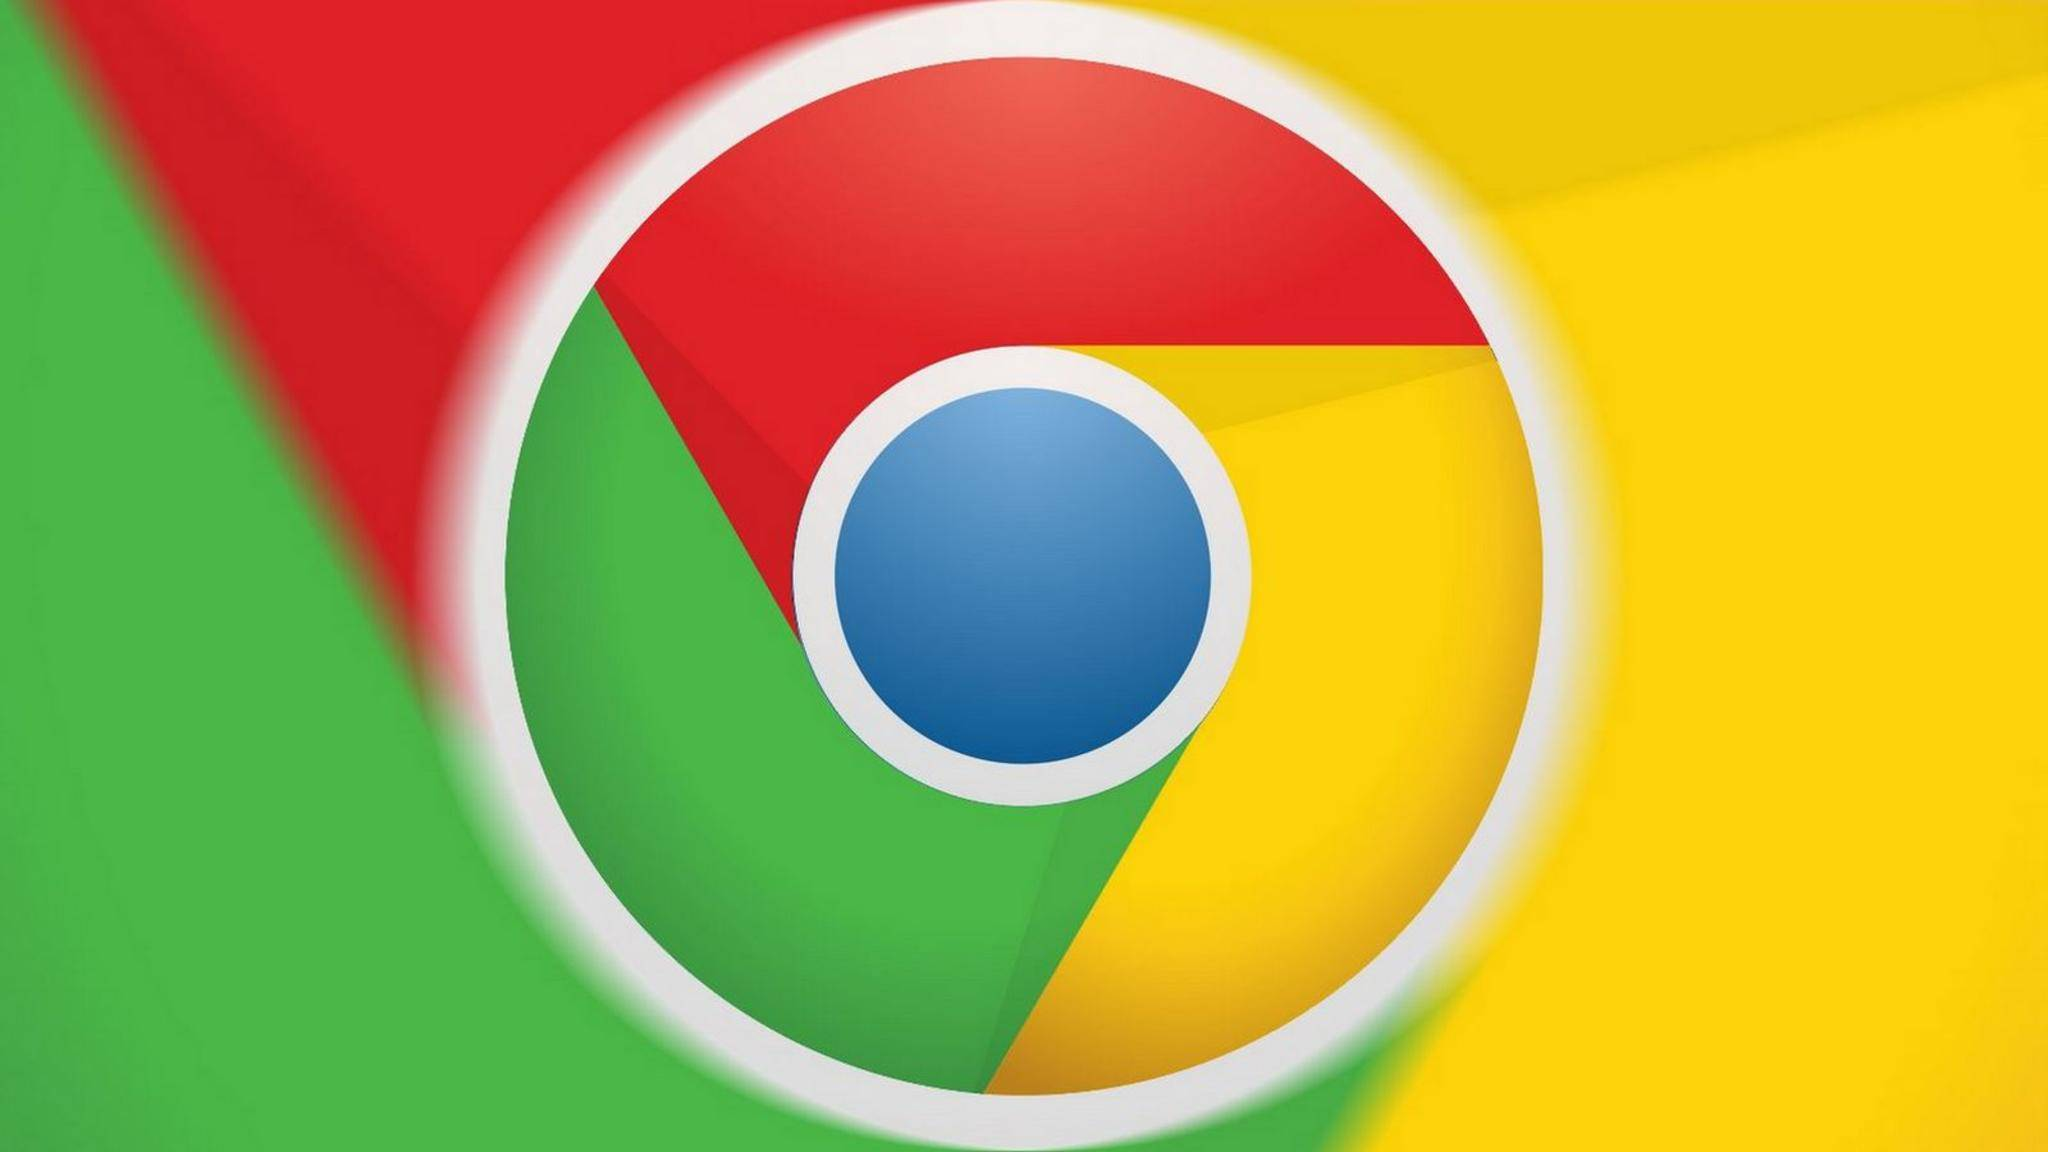 Google Chrome für Android erlaubt nun den Download von Videos und Websites.